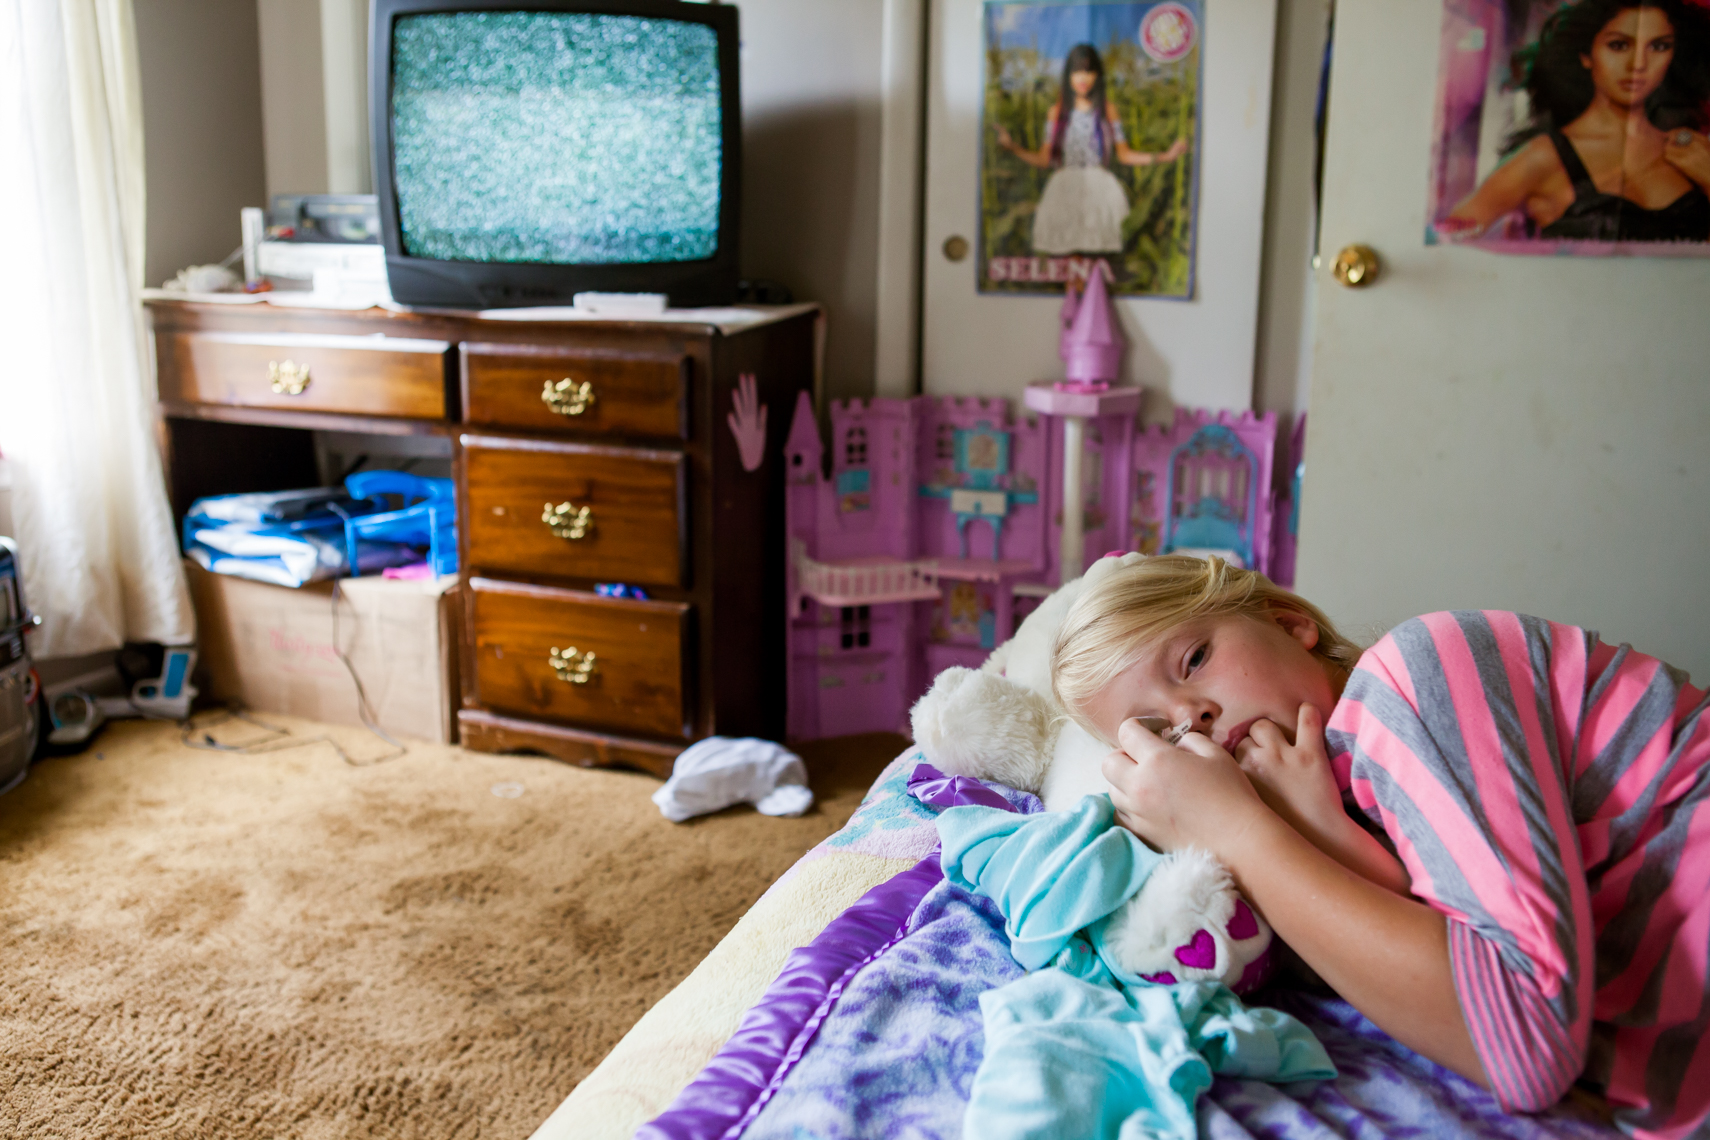 Girl in her room with fuzzy tv screen. Tullahoma, Tennessee. Documentary, real, authentic, day in the life, editorial, reportage, travel, cause marketing, non-profit, food, beverage, photographer, photojournalist, journalist, pictures, photos, photographs, photo, journalist, Austin, Mississippi, Louisiana, New Orleans, Carbondale, Chattanooga, Washington DC, Louisville, Lexington, Johnson City, Knoxville, Asheville, NC, North Carolina, Nashville, Memphis, Tennessee, TN, Atlanta, Athens, Savannah, Georgia, GA, Chicago, Illinois, Southeast, Midwest, St. Louis, Missouri, Indiana, Indianapolis, Cincinnati, Little Rock, Arkansas, AK, portrait, freelancer, freelance, women in photography, women-owned business, travel photographer